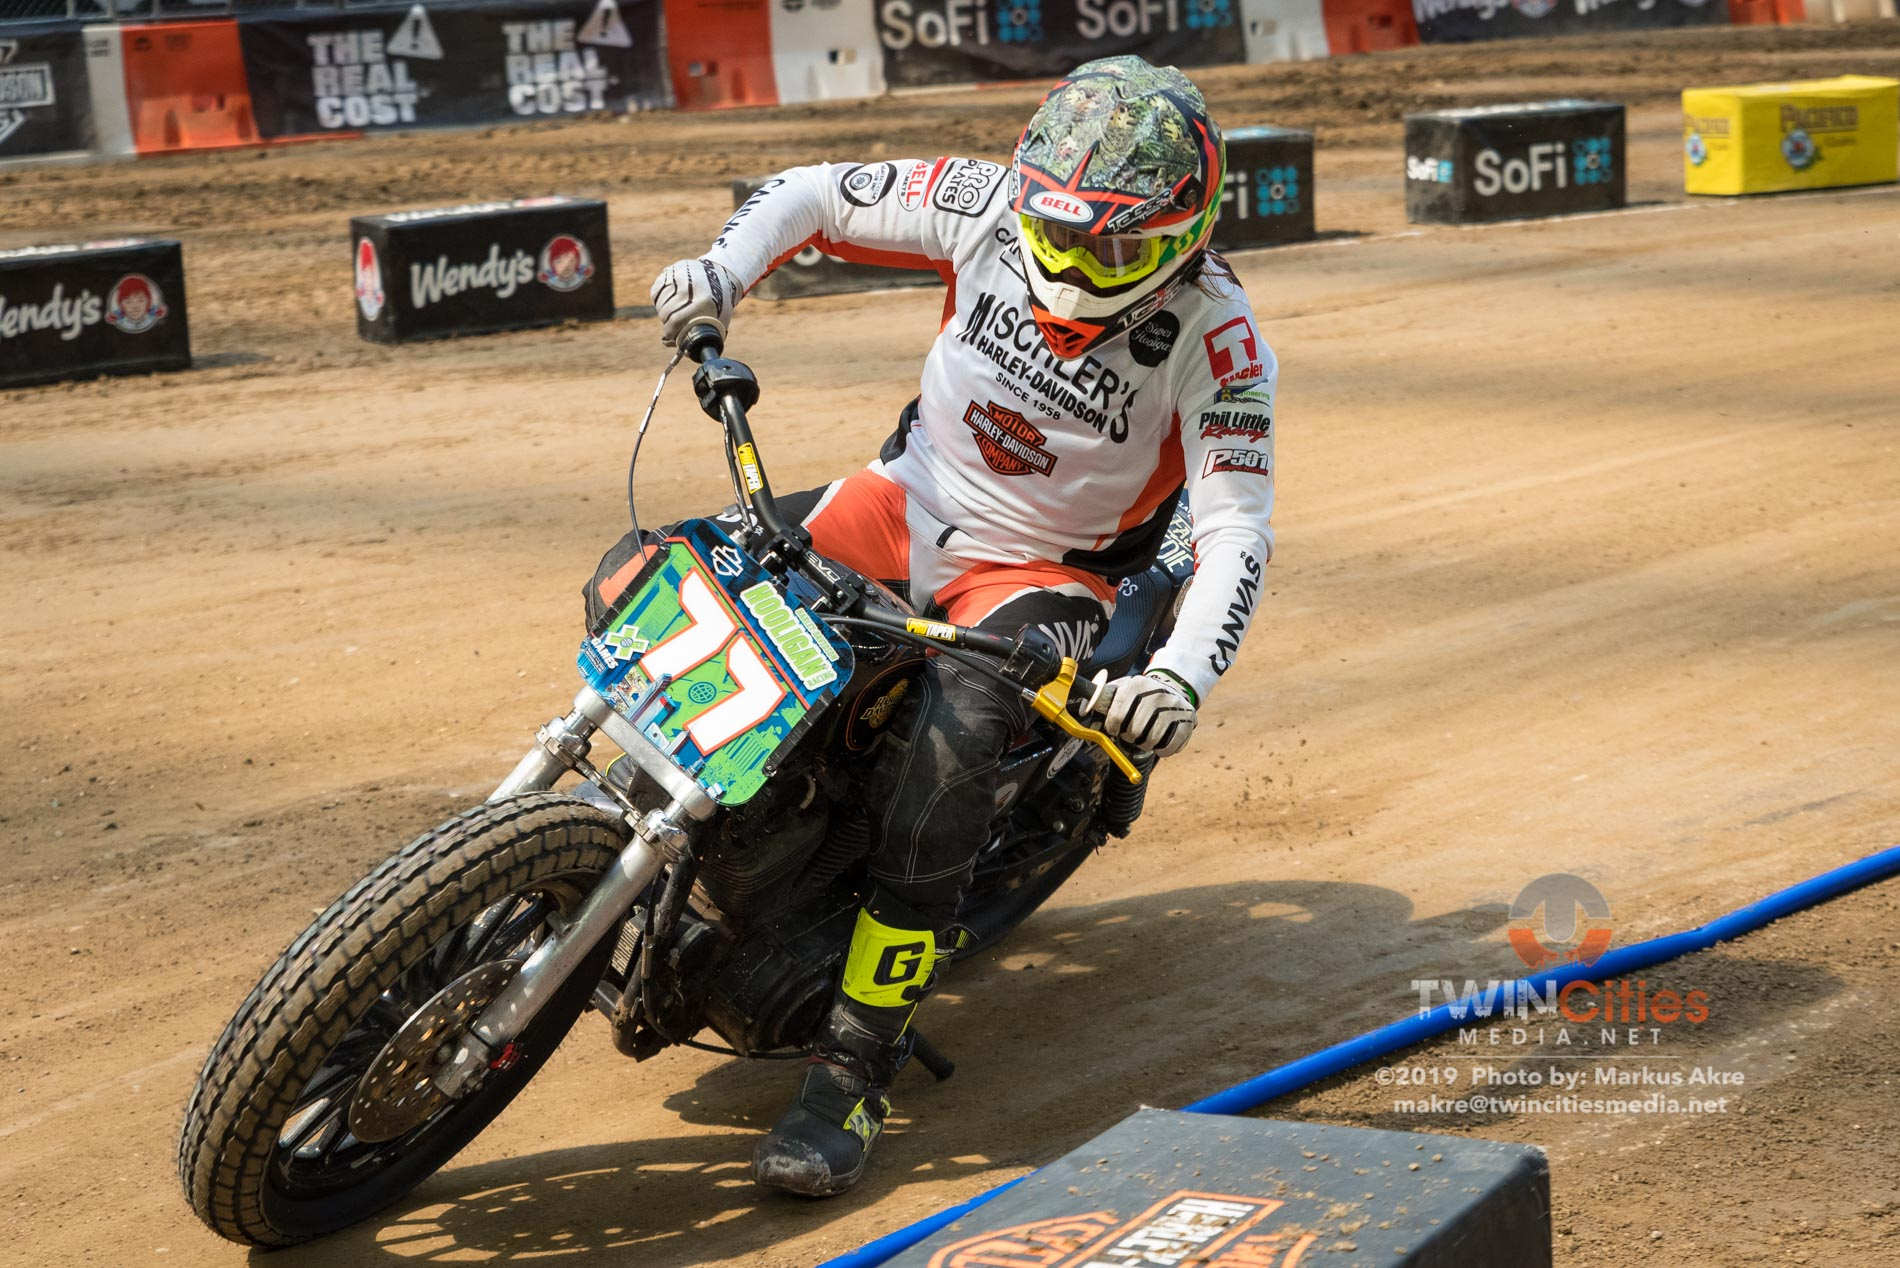 2019-X-Games-Day-4-Harley-Davidson-Hooligan-Racing-15